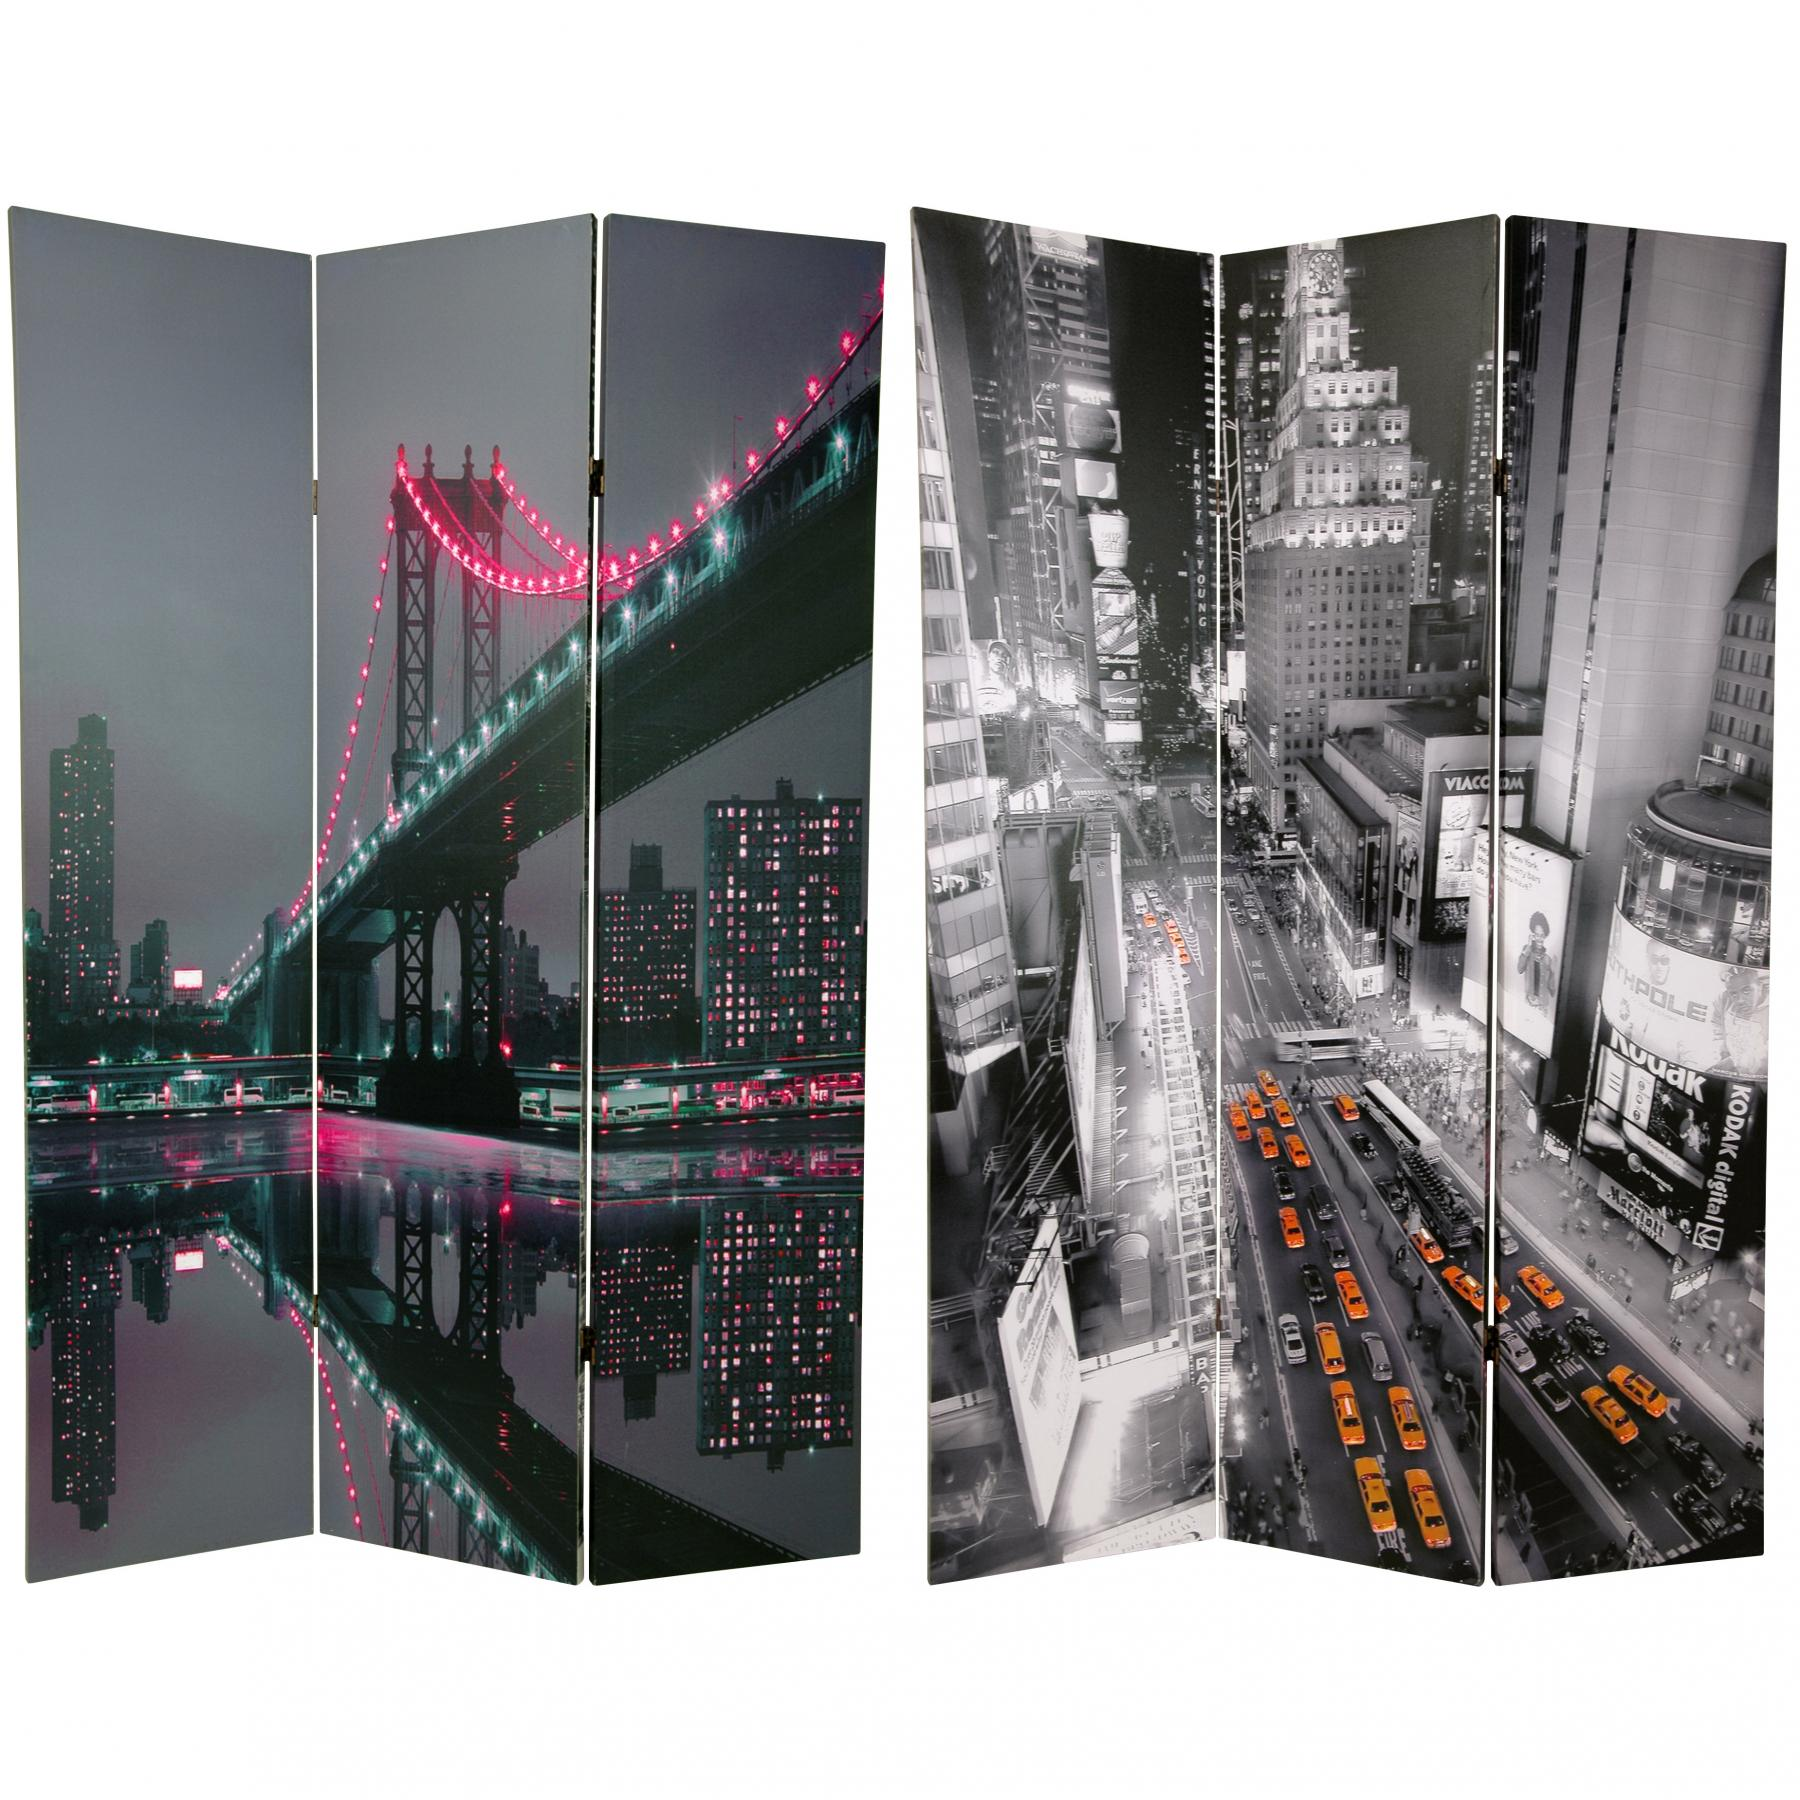 6 Ft Tall New York State Of Mind Room Divider